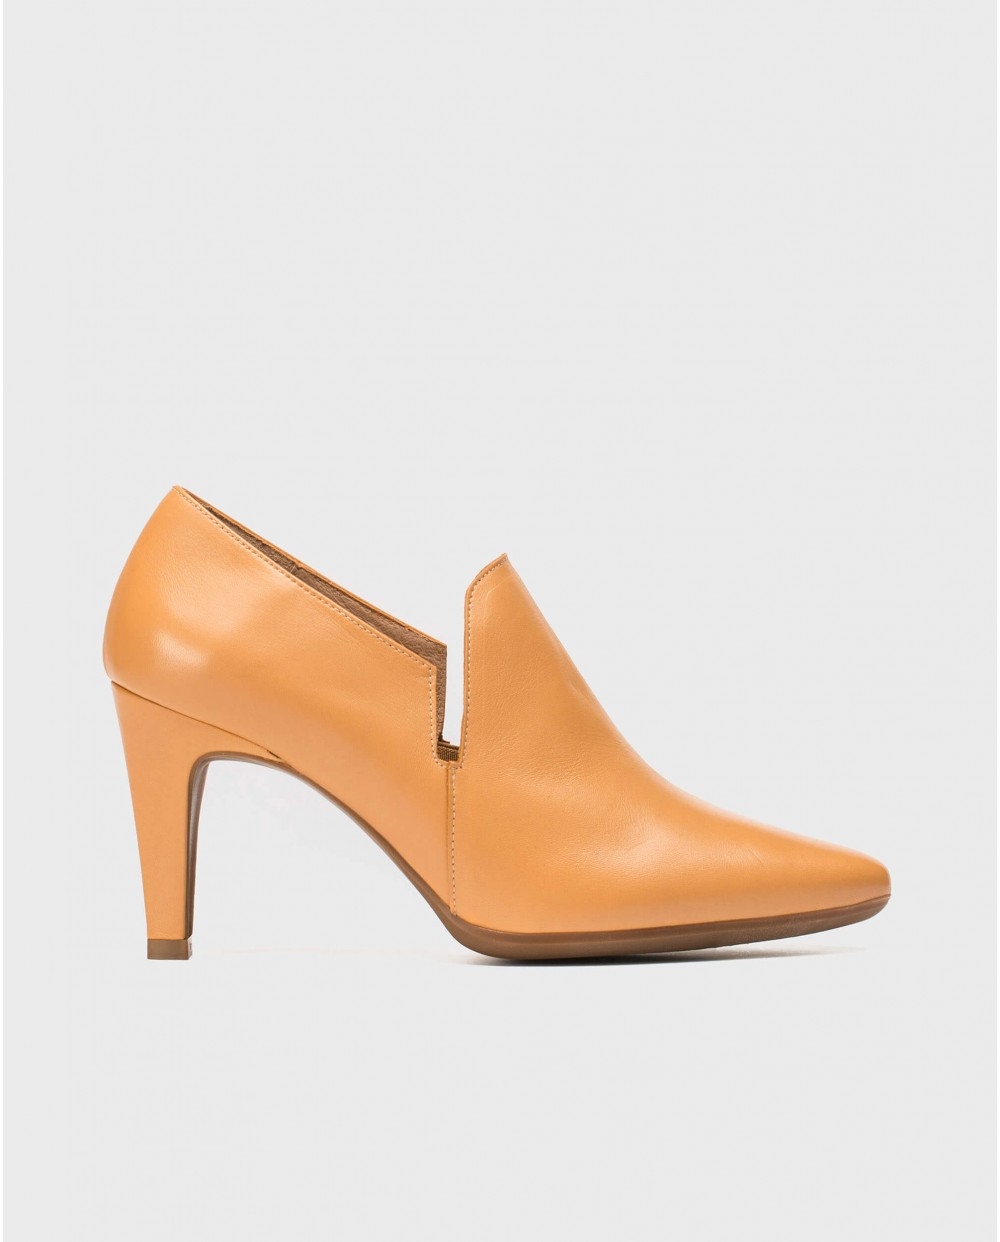 Wonders-Outlet-Leather boot inspired shoe